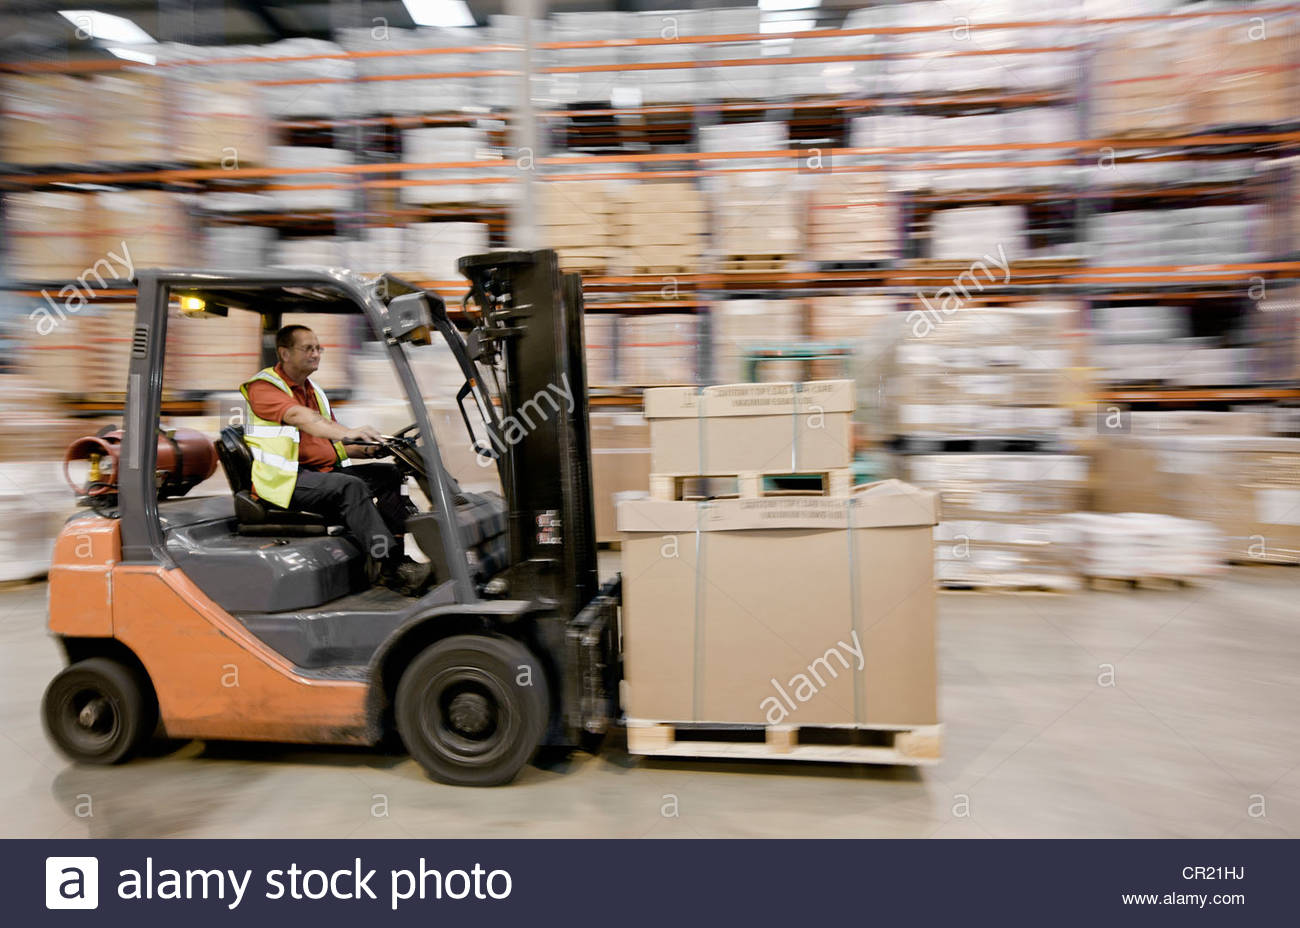 Blurred view of worker in warehouse - Stock Image